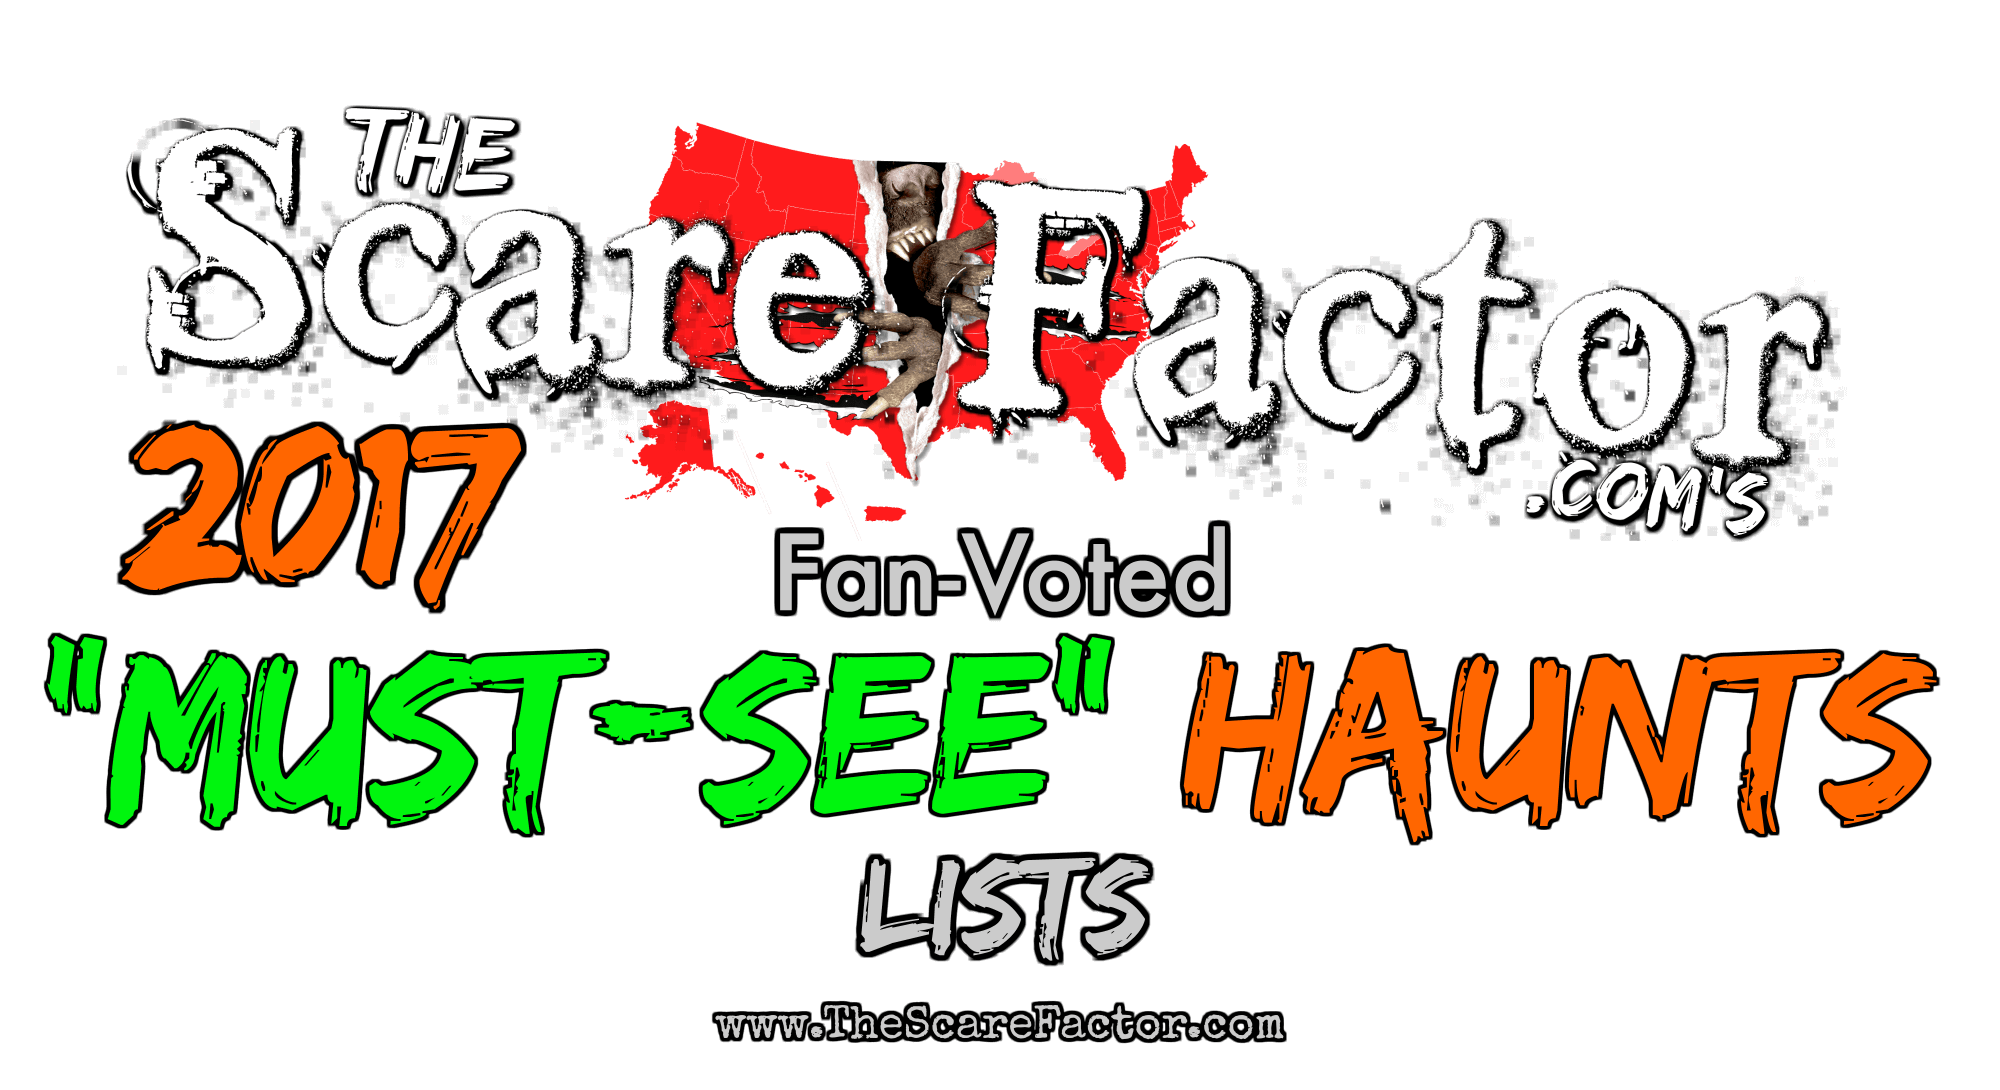 Top Washington Haunted Houses Lists